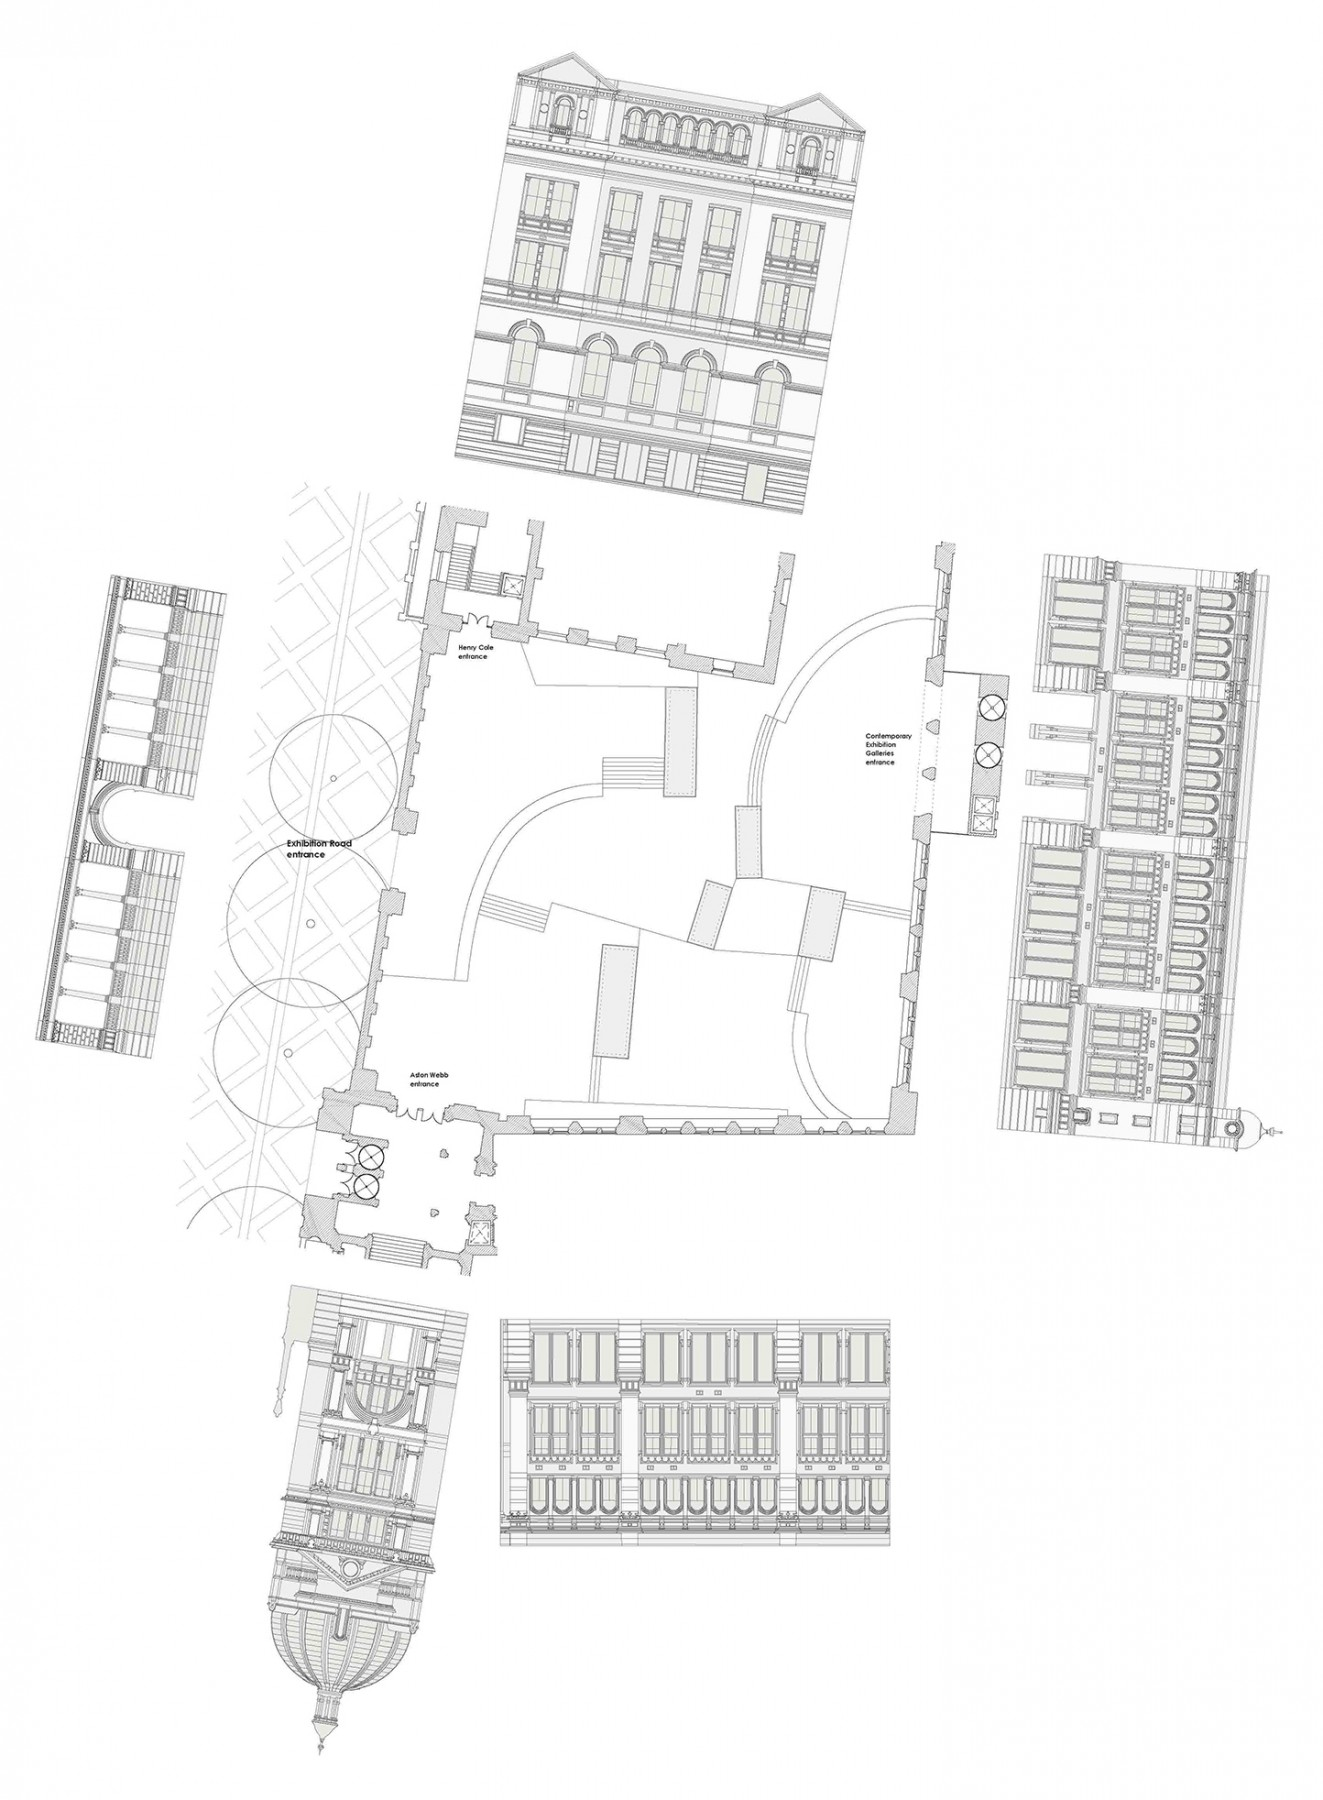 Victoria-and-Albert-Museum-V&A-competition-Exhibition-Road-gallery-London-Sir-Aston-Webb-design-short-list-Jamie-Fobert-architects-floor-plan